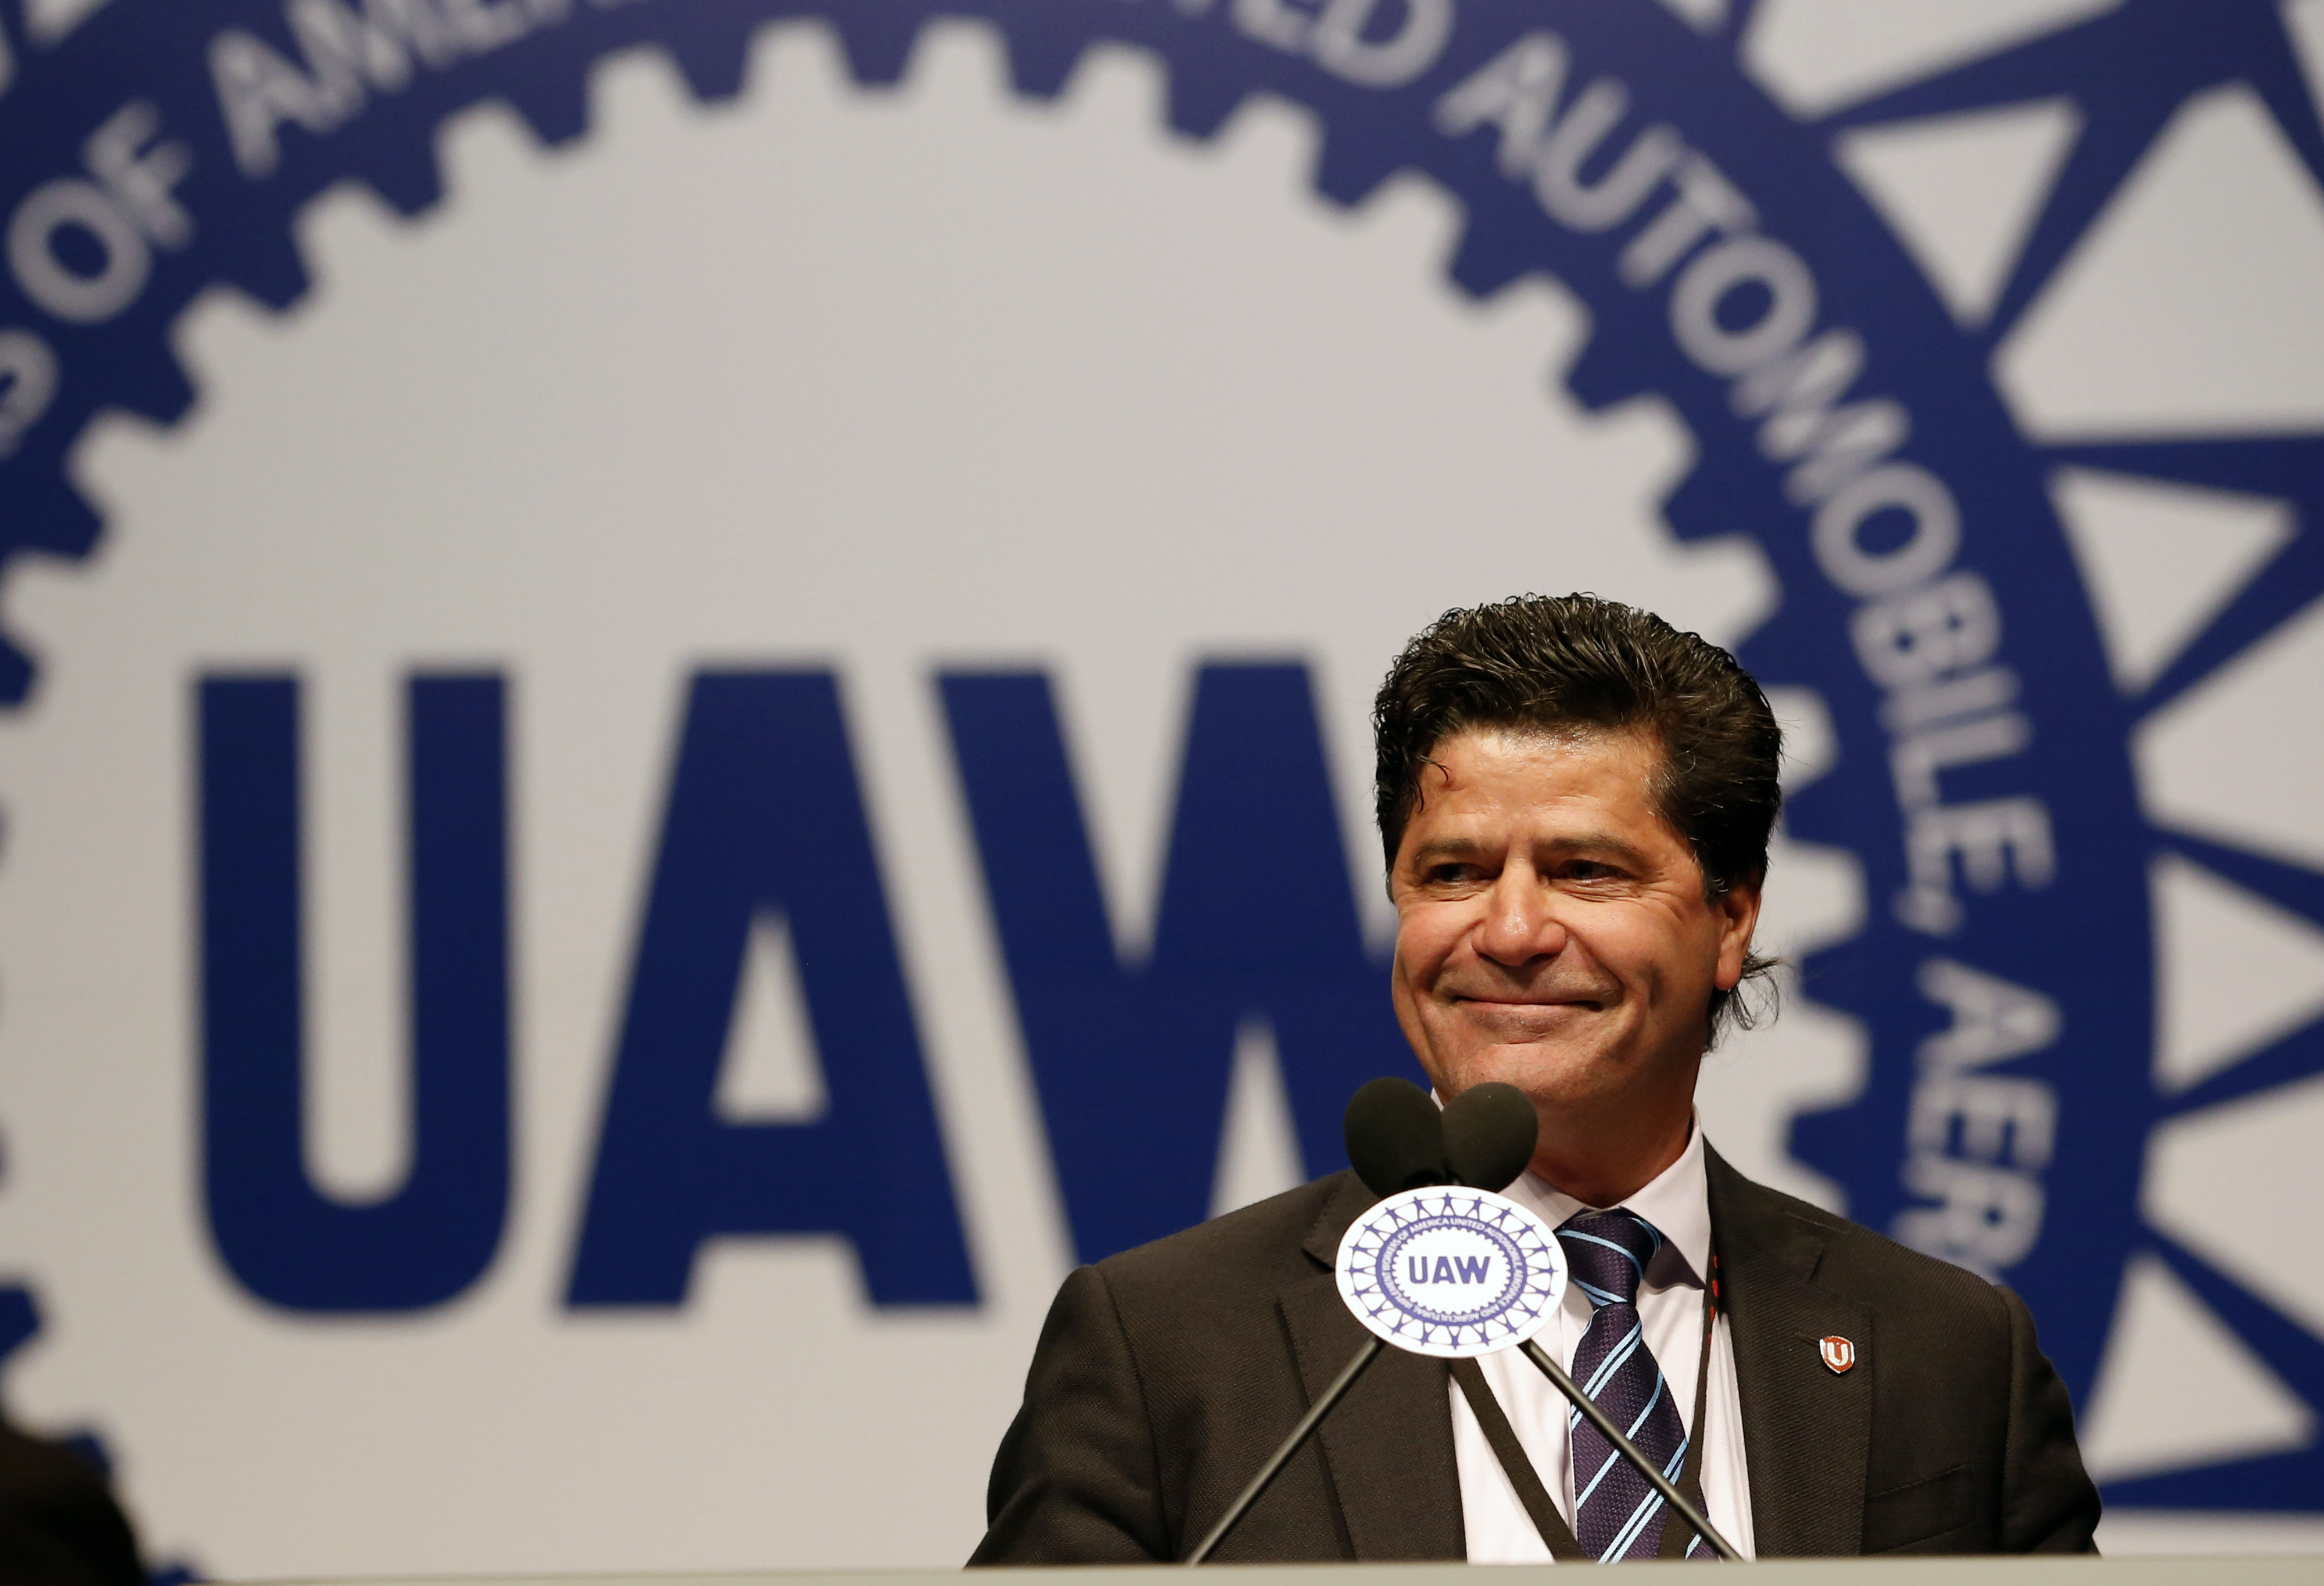 United Auto Workers (UAW) Elect New President at Constitutional Convention